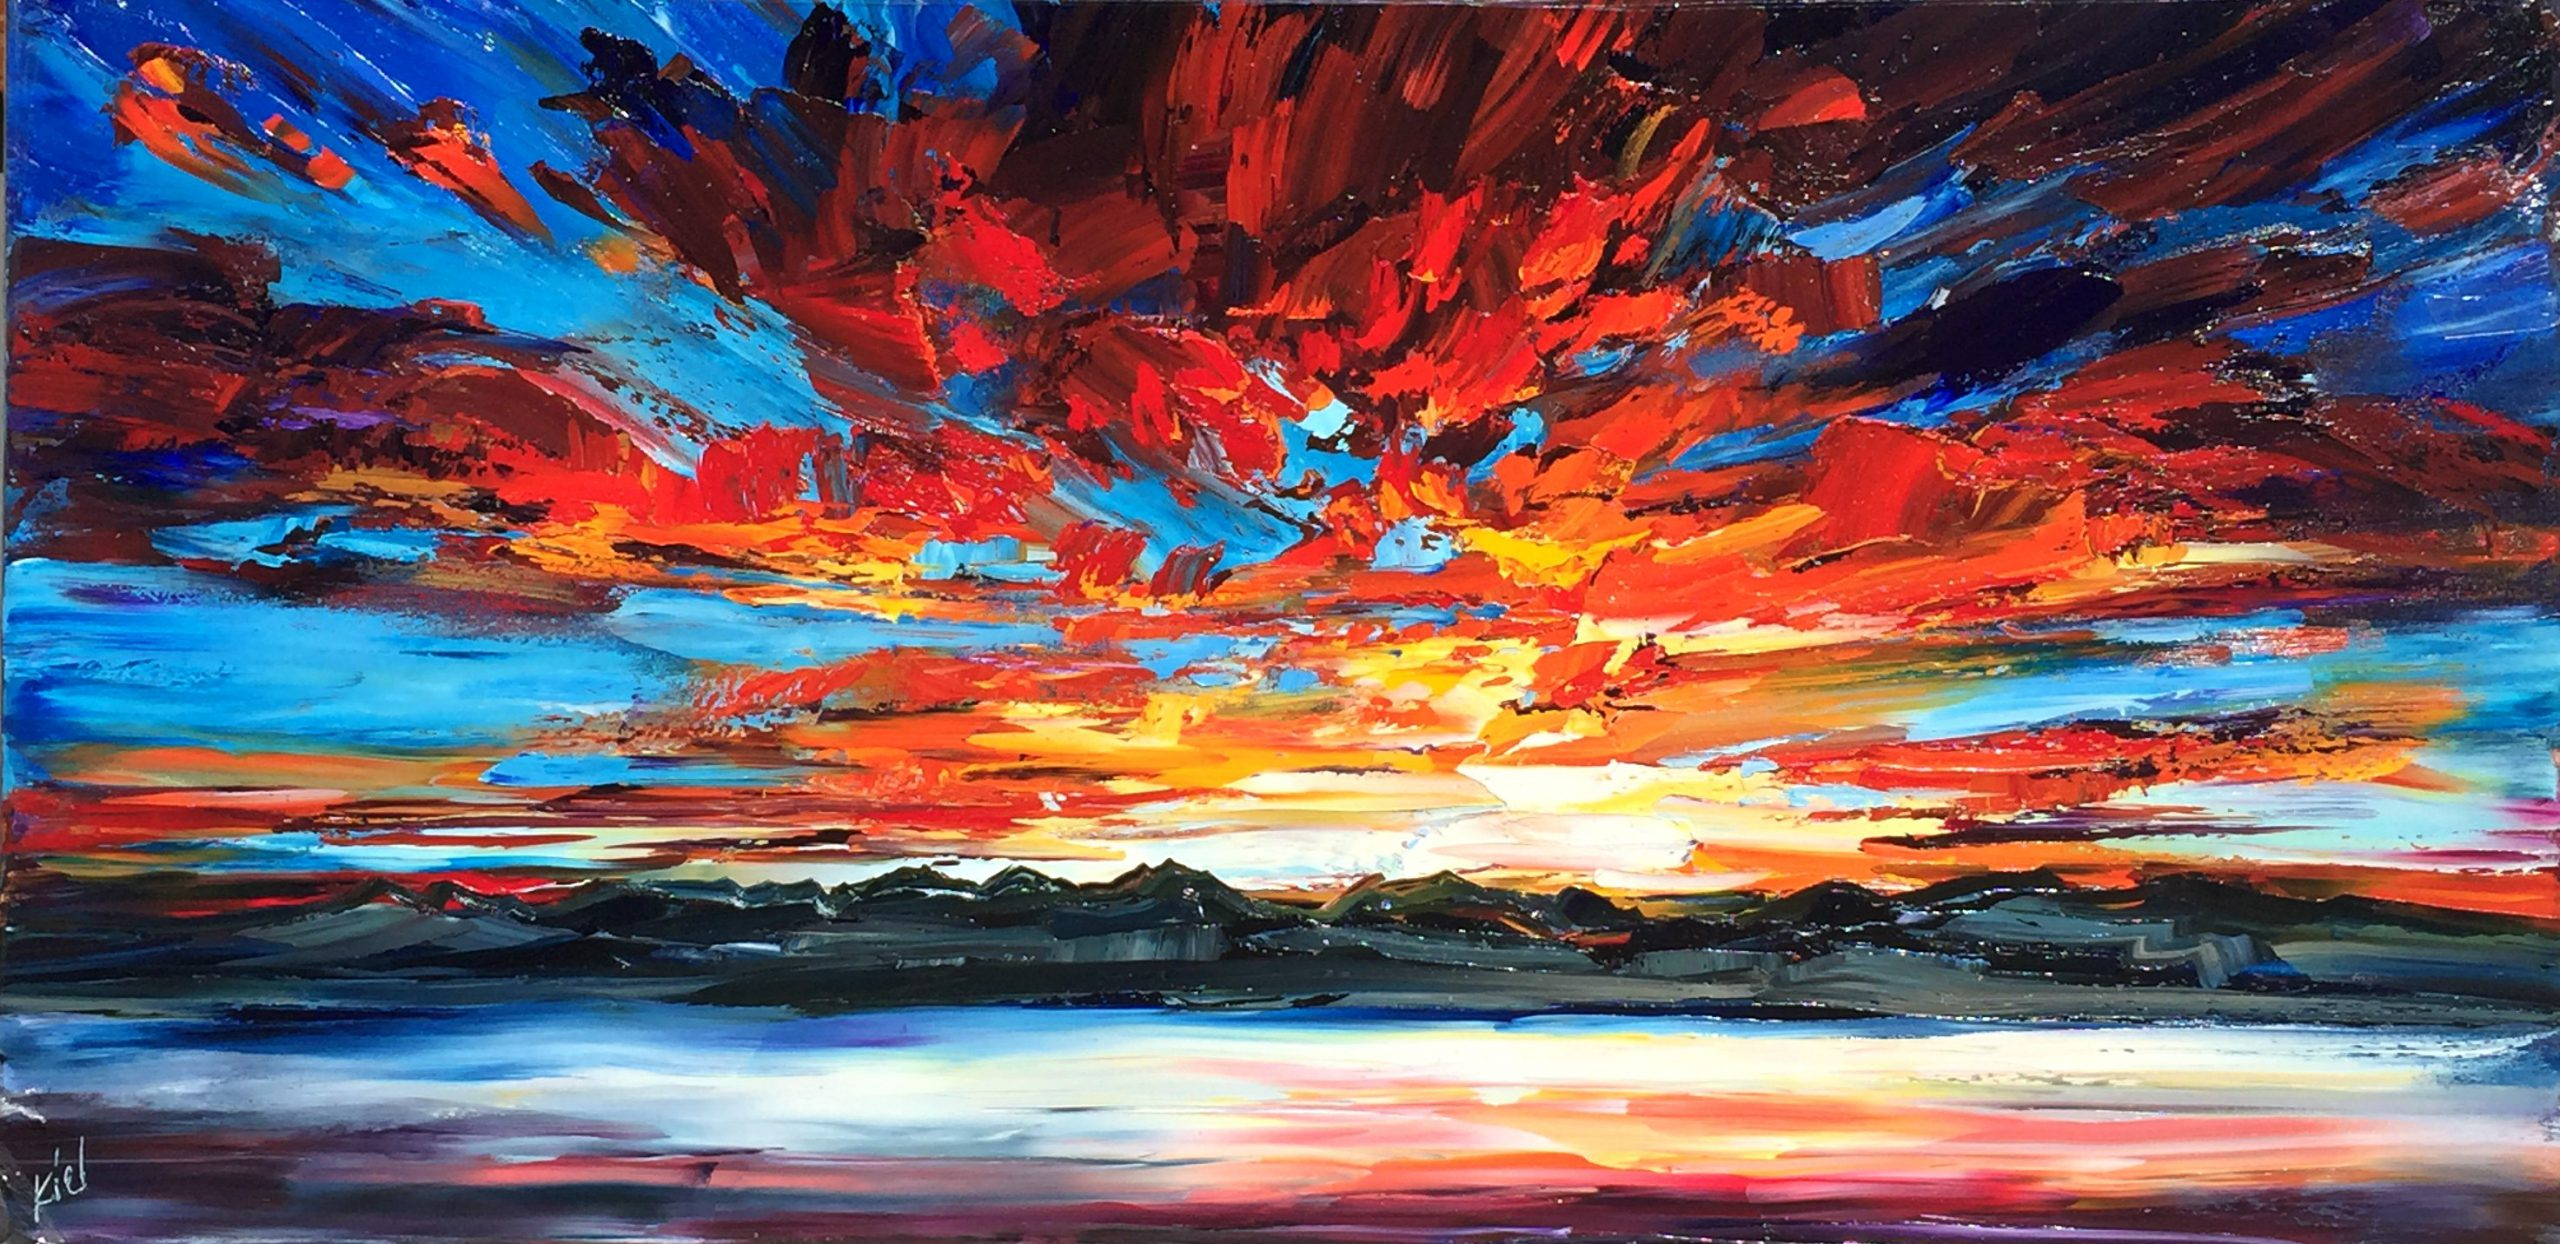 Side Effects, oil painting by Kimberly Kiel | Effusion Art Gallery + Cast Glass Studio, Invermere BC